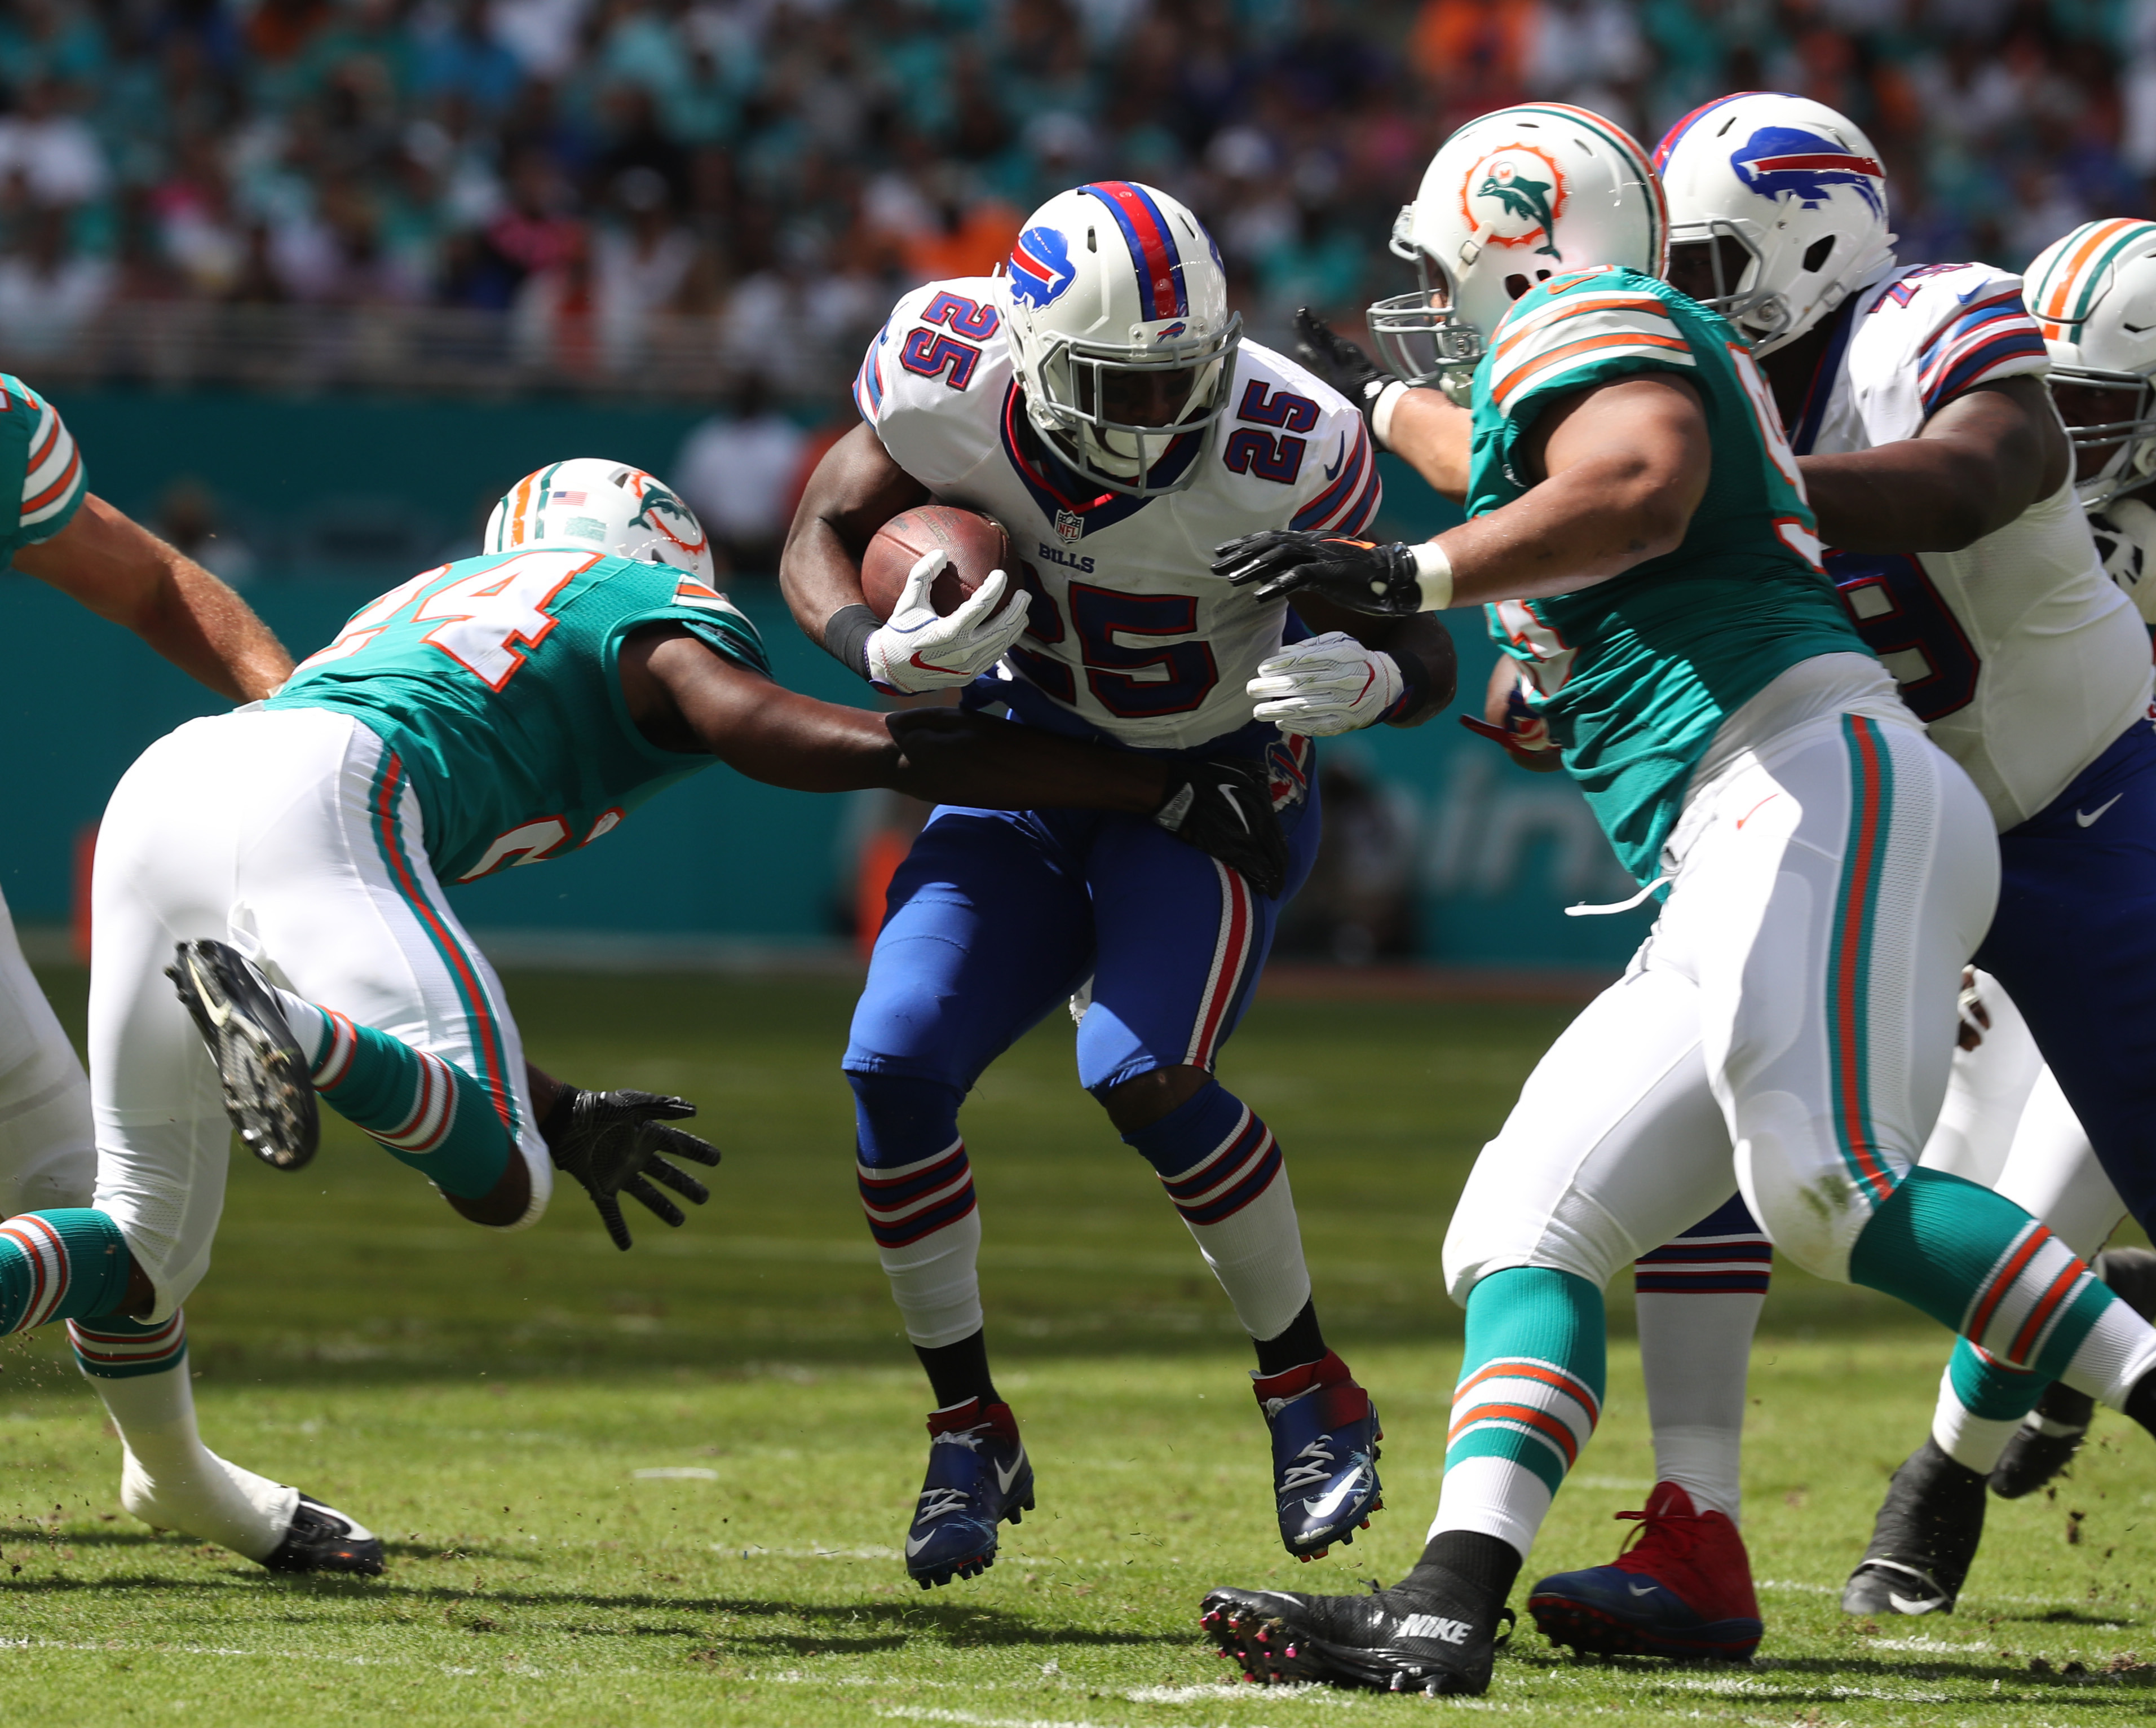 Bills running back LeSean McCoy struggled to find any space against the Dolphins in Week Seven. (James P. McCoy/Buffalo News)